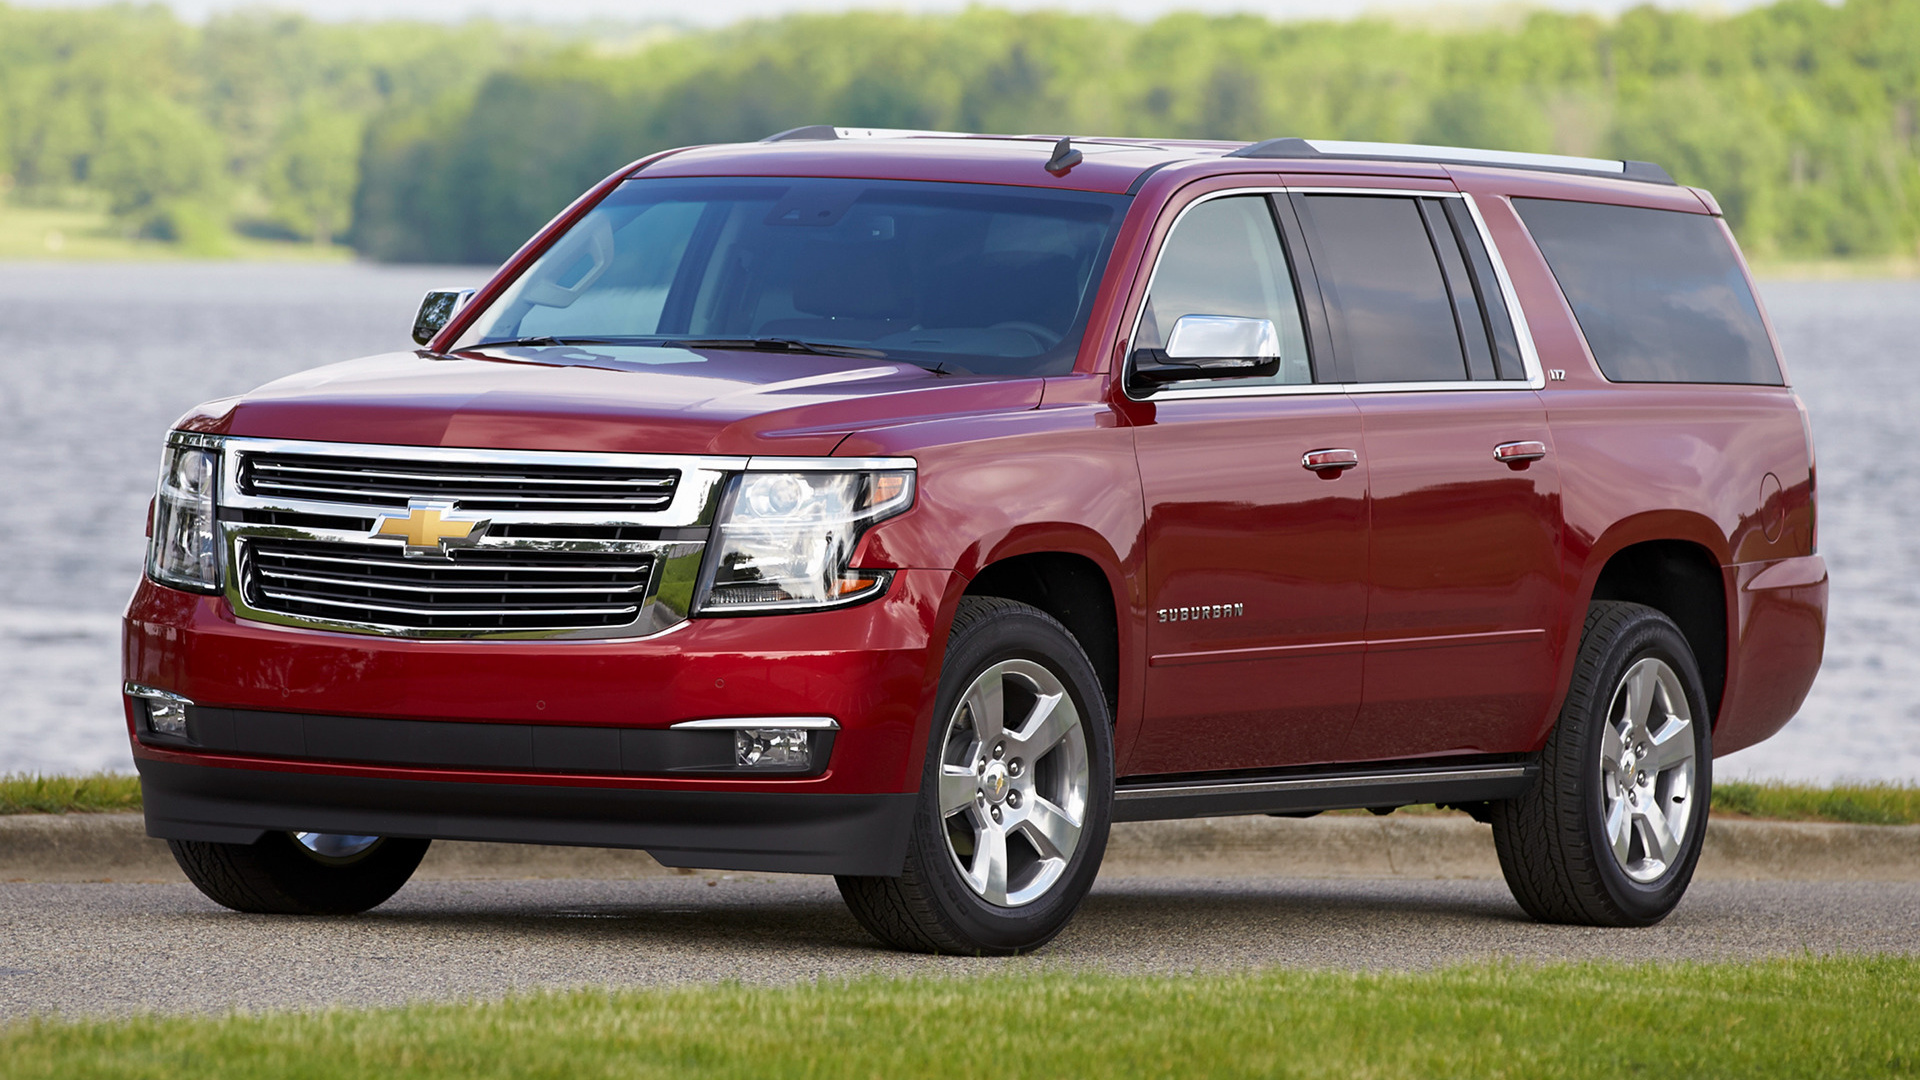 Chevrolet Suburban LTZ (2015) Wallpapers and HD Images ...